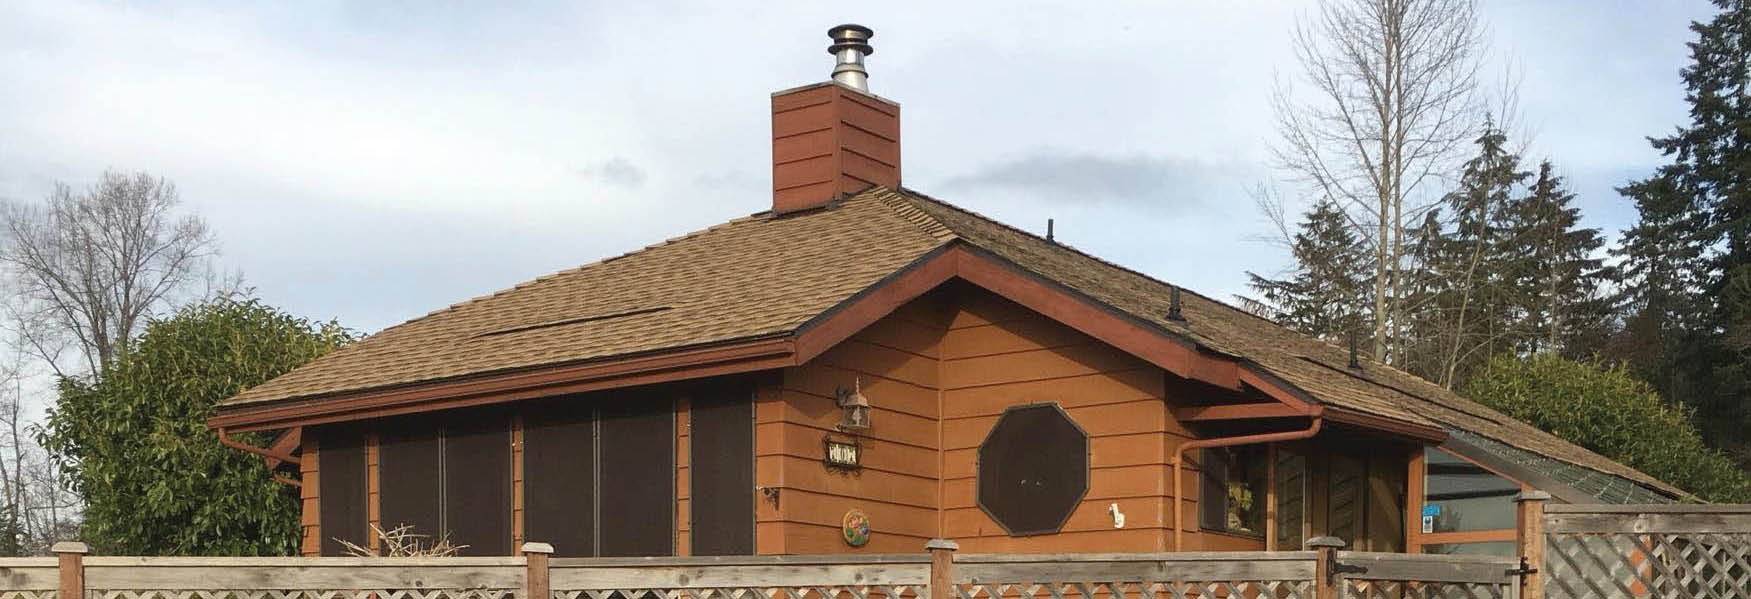 Old Experience Roofing main banner image - Tacoma, WA